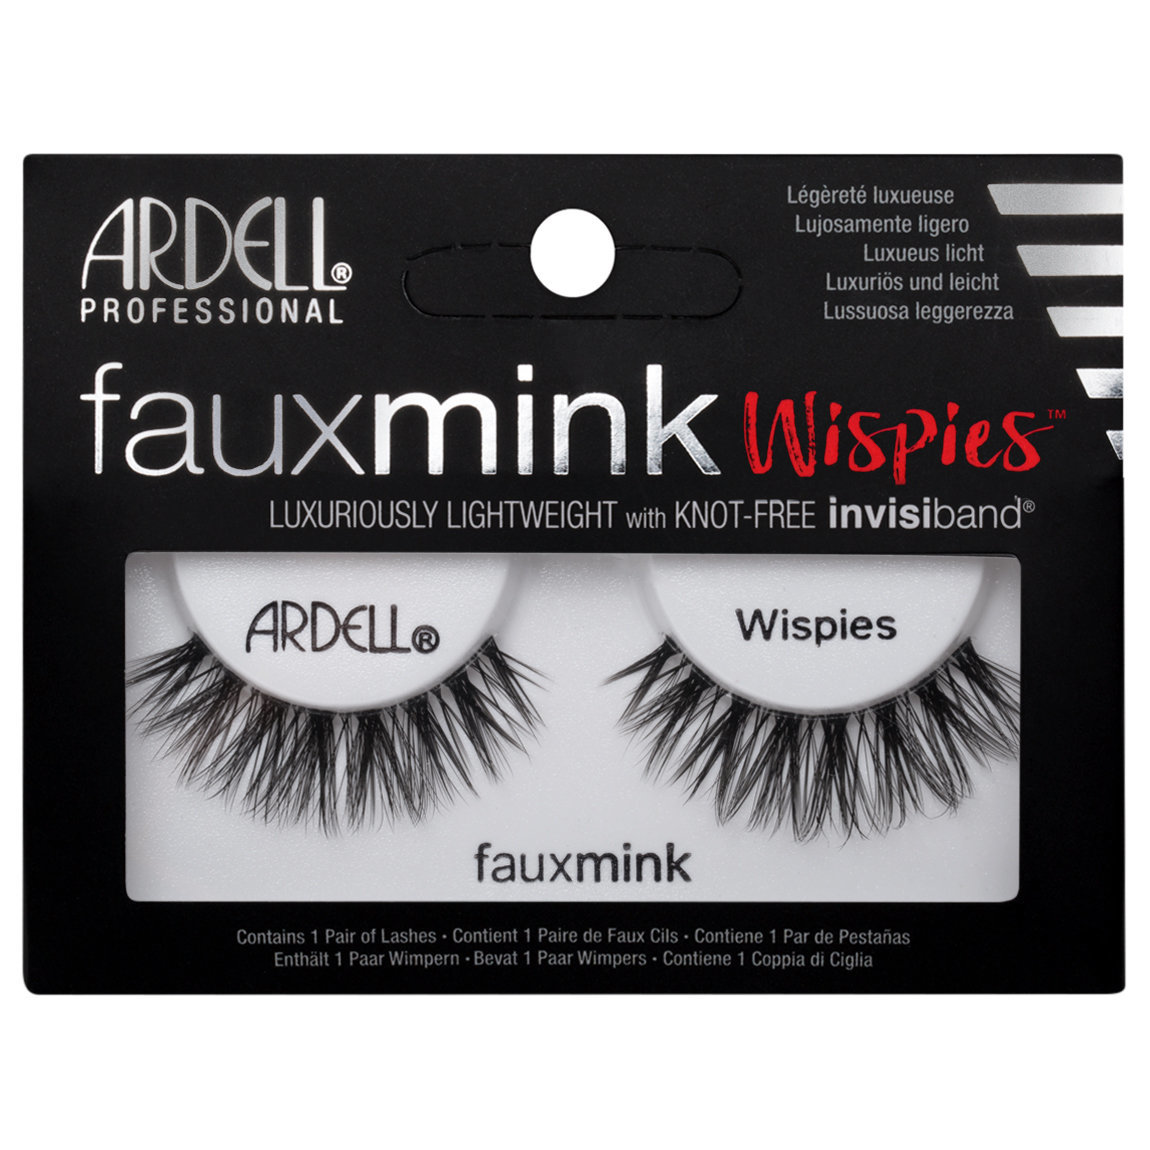 f627316ac7d Ardell Faux Mink Lashes Wispies | Beautylish